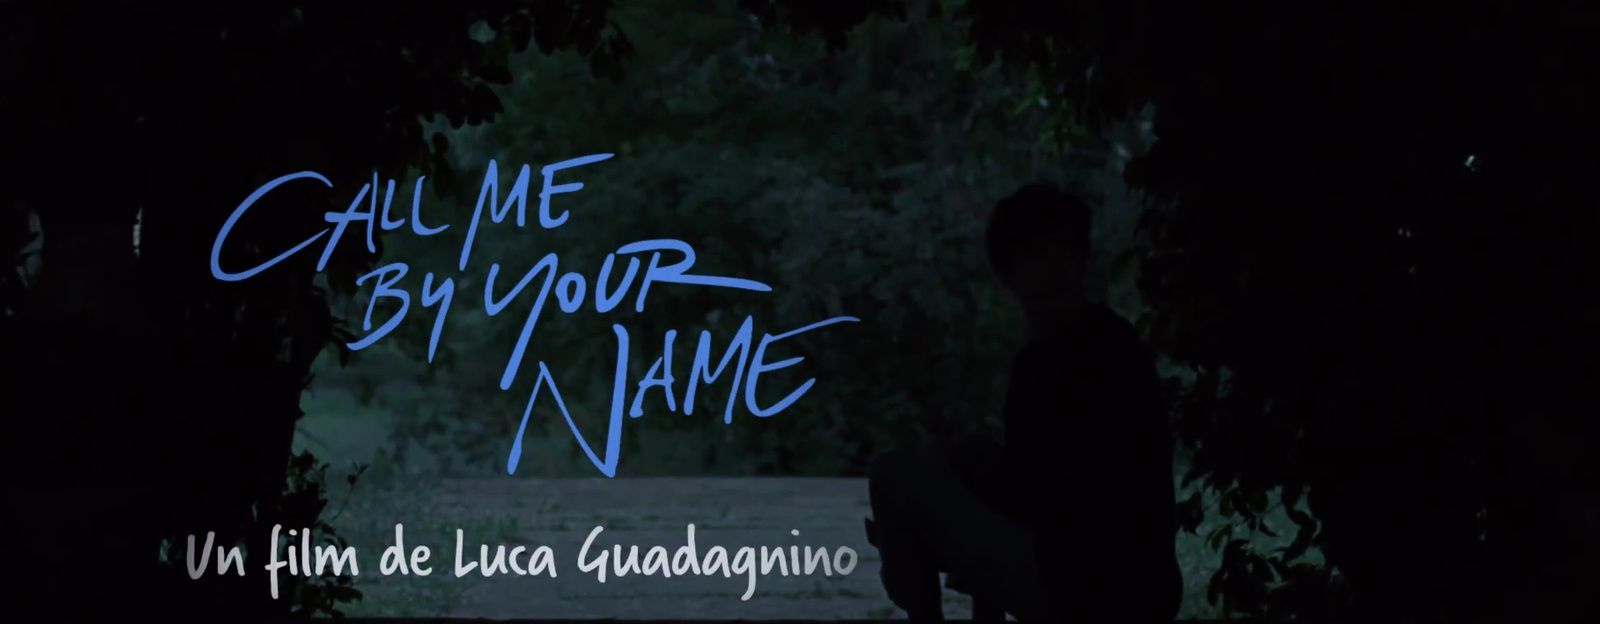 Bande-annonce du film Call me by your name.